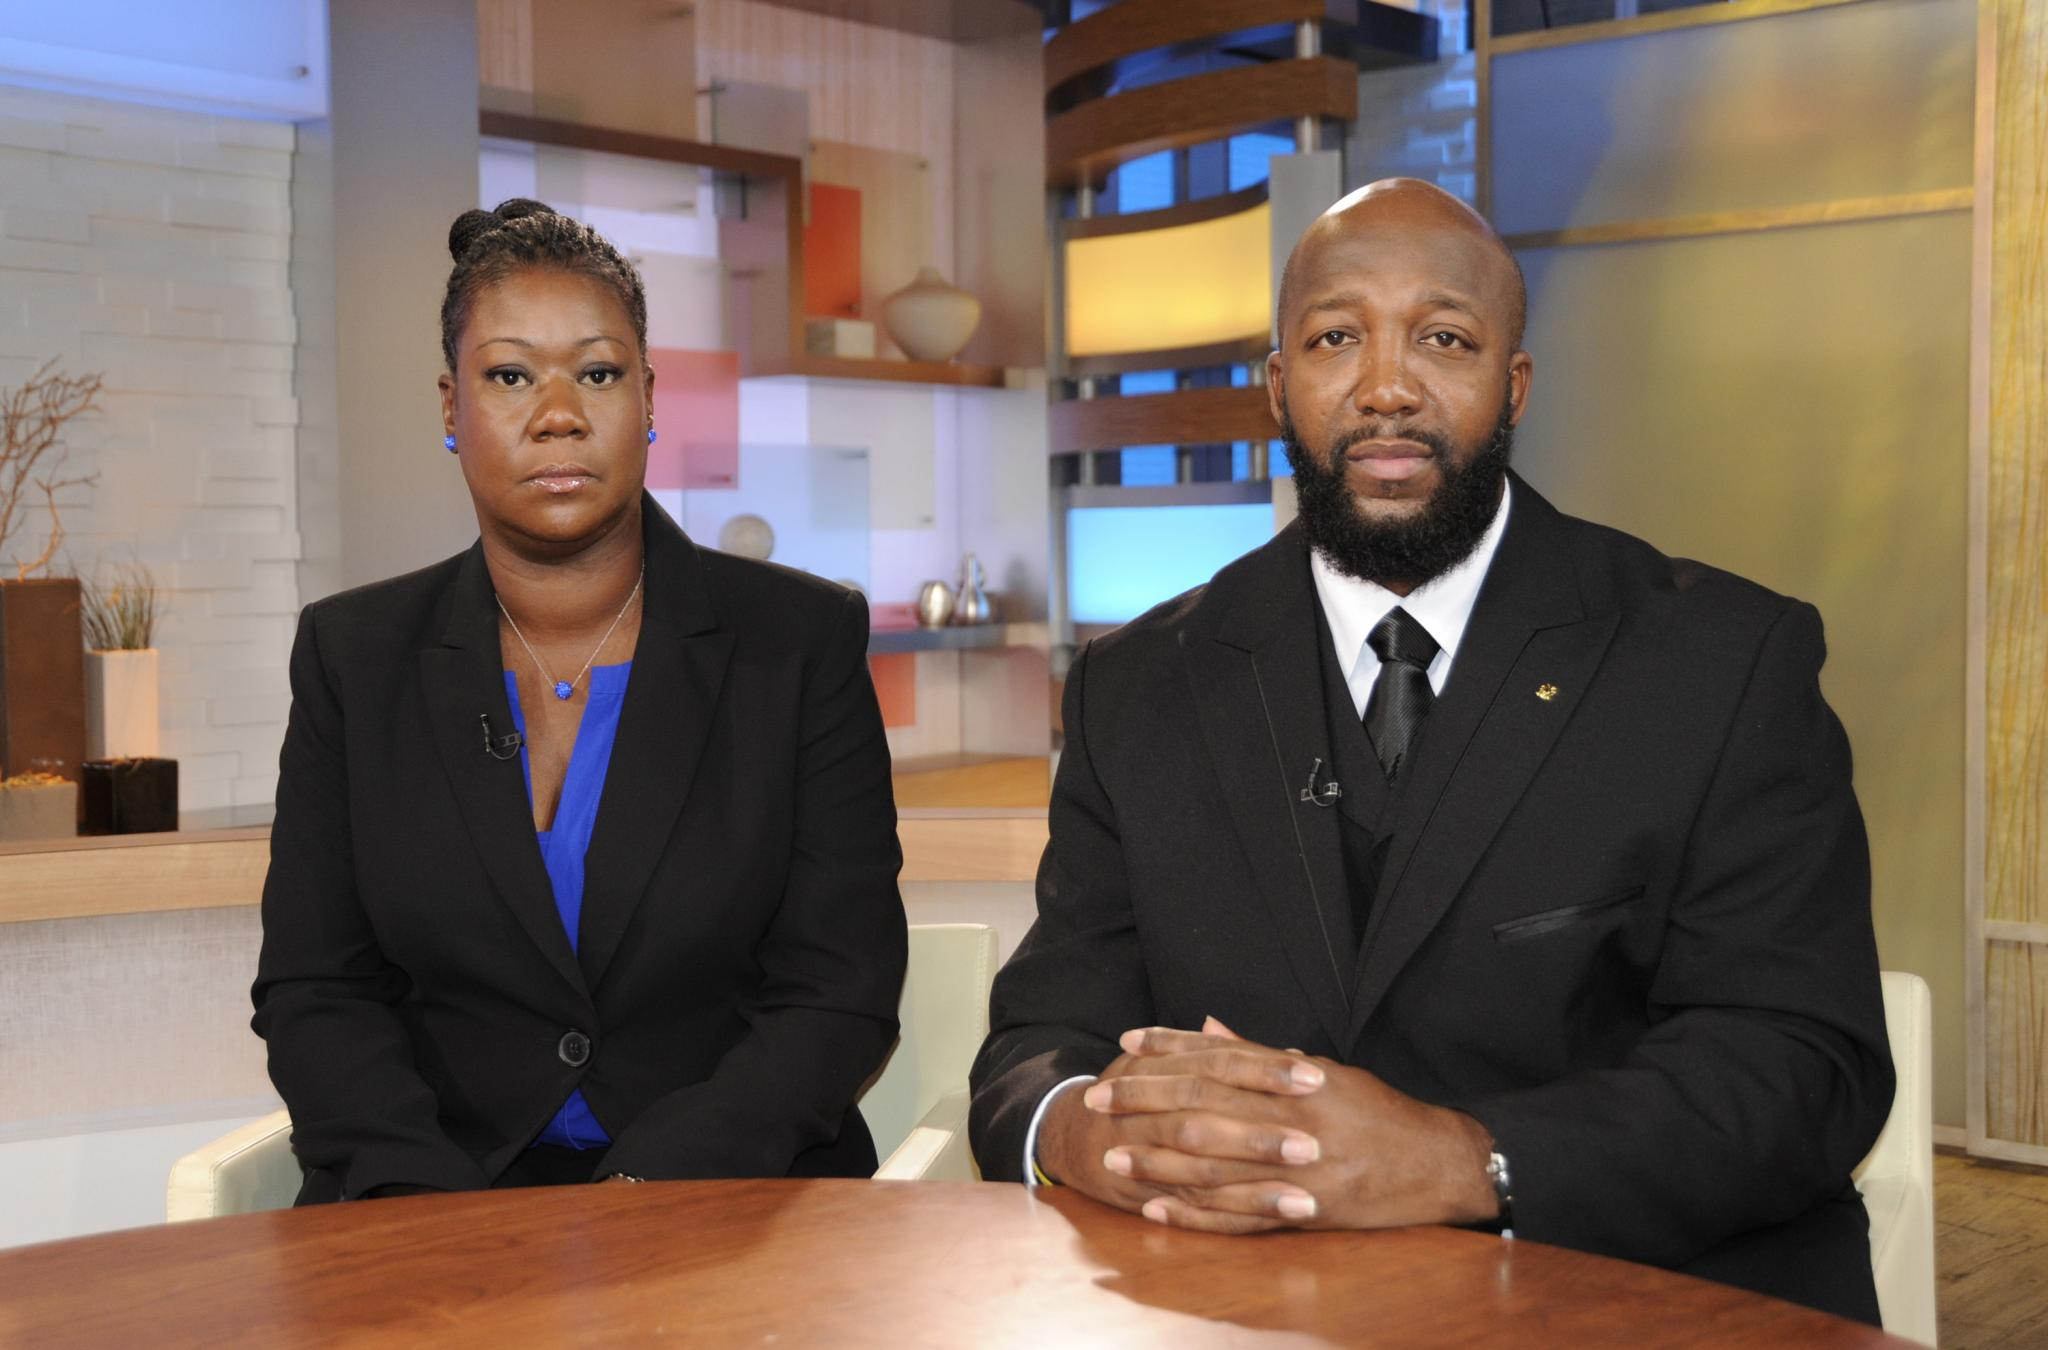 Trayvon Martin's Parents Detail Their First Encounter With George Zimmerman In Episode 3 Of 'Rest In Power'